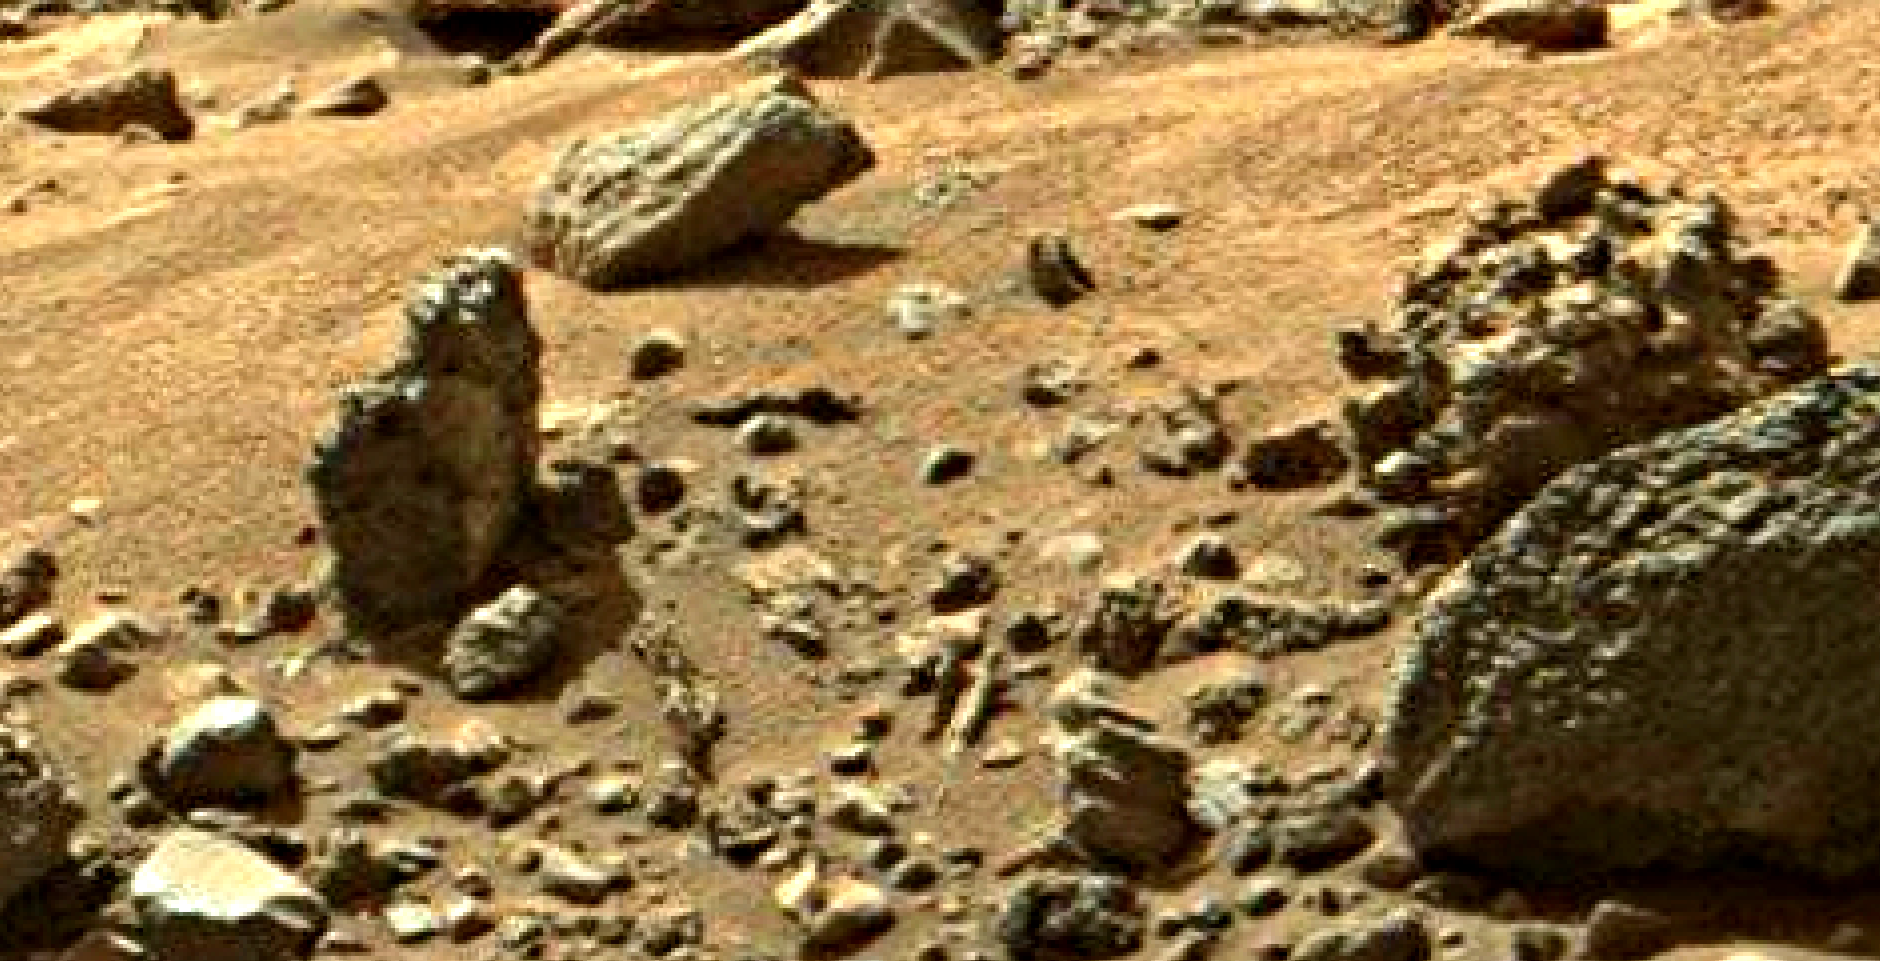 mars sol 1405 anomaly artifacts 6 was life on mars